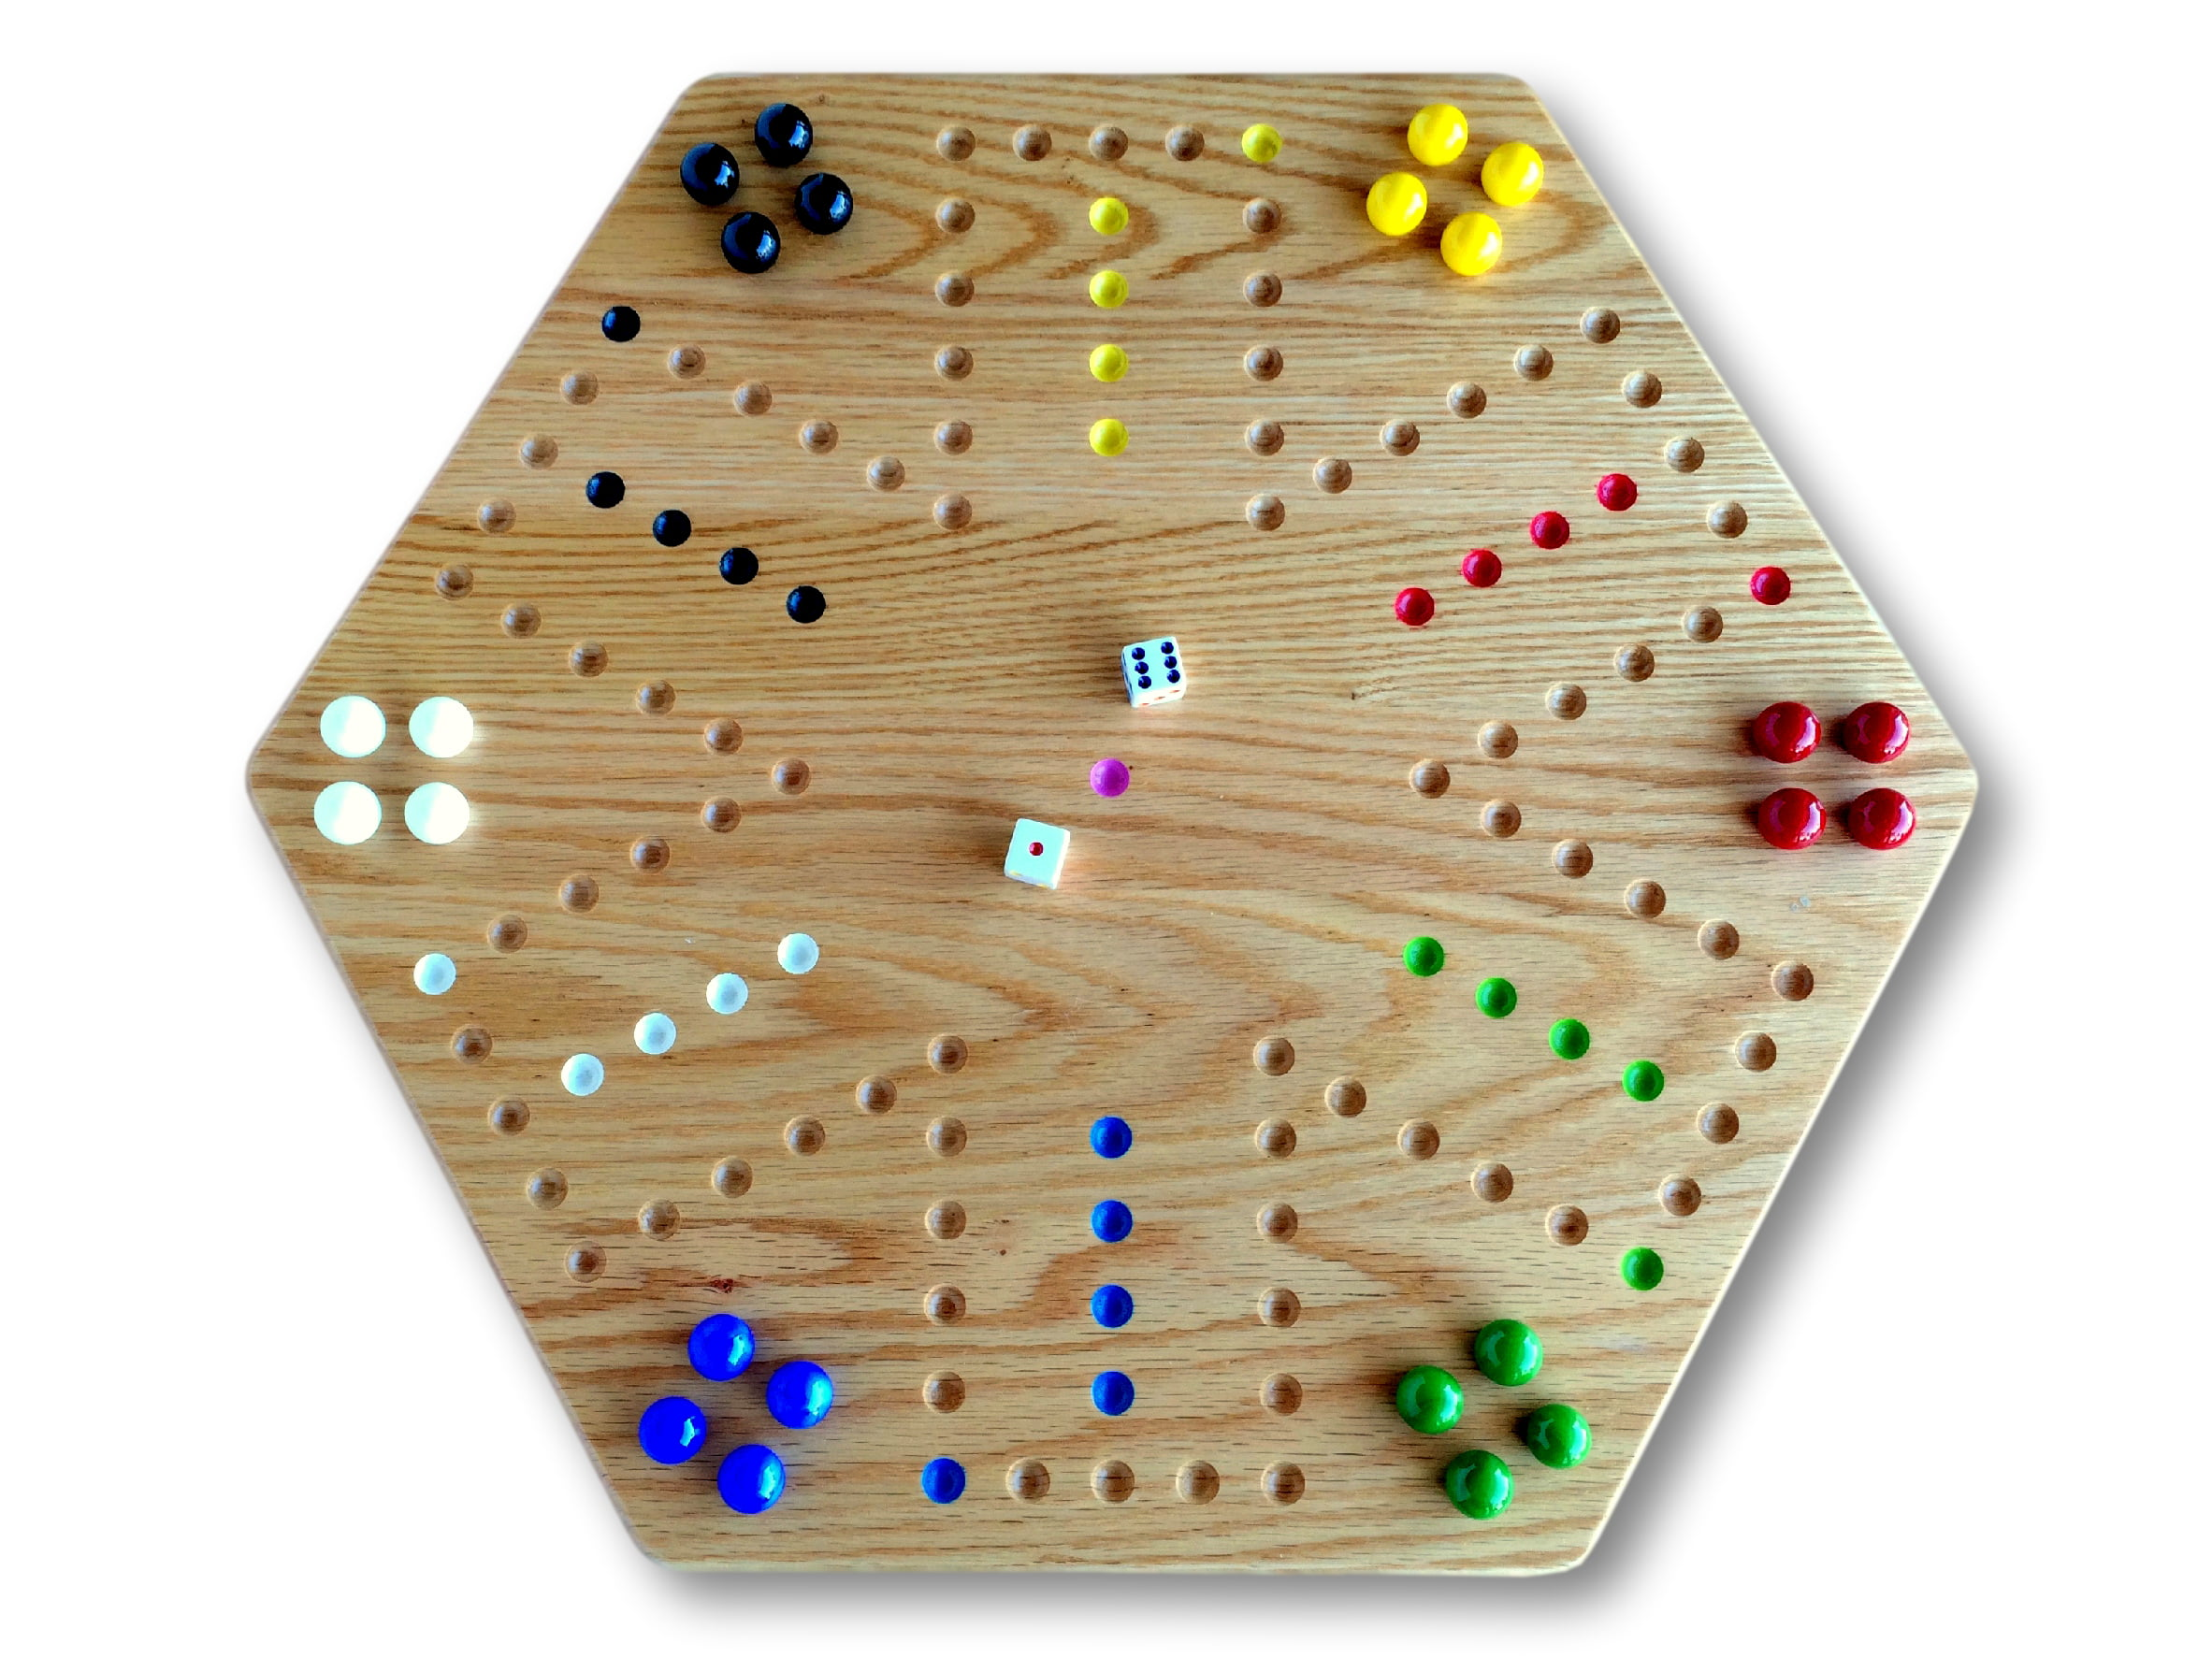 """AmishToyBox.com Oak Hand-Painted 20"""" Wooden Aggravation Game Board, Double-Sided by Wengerd Wood"""